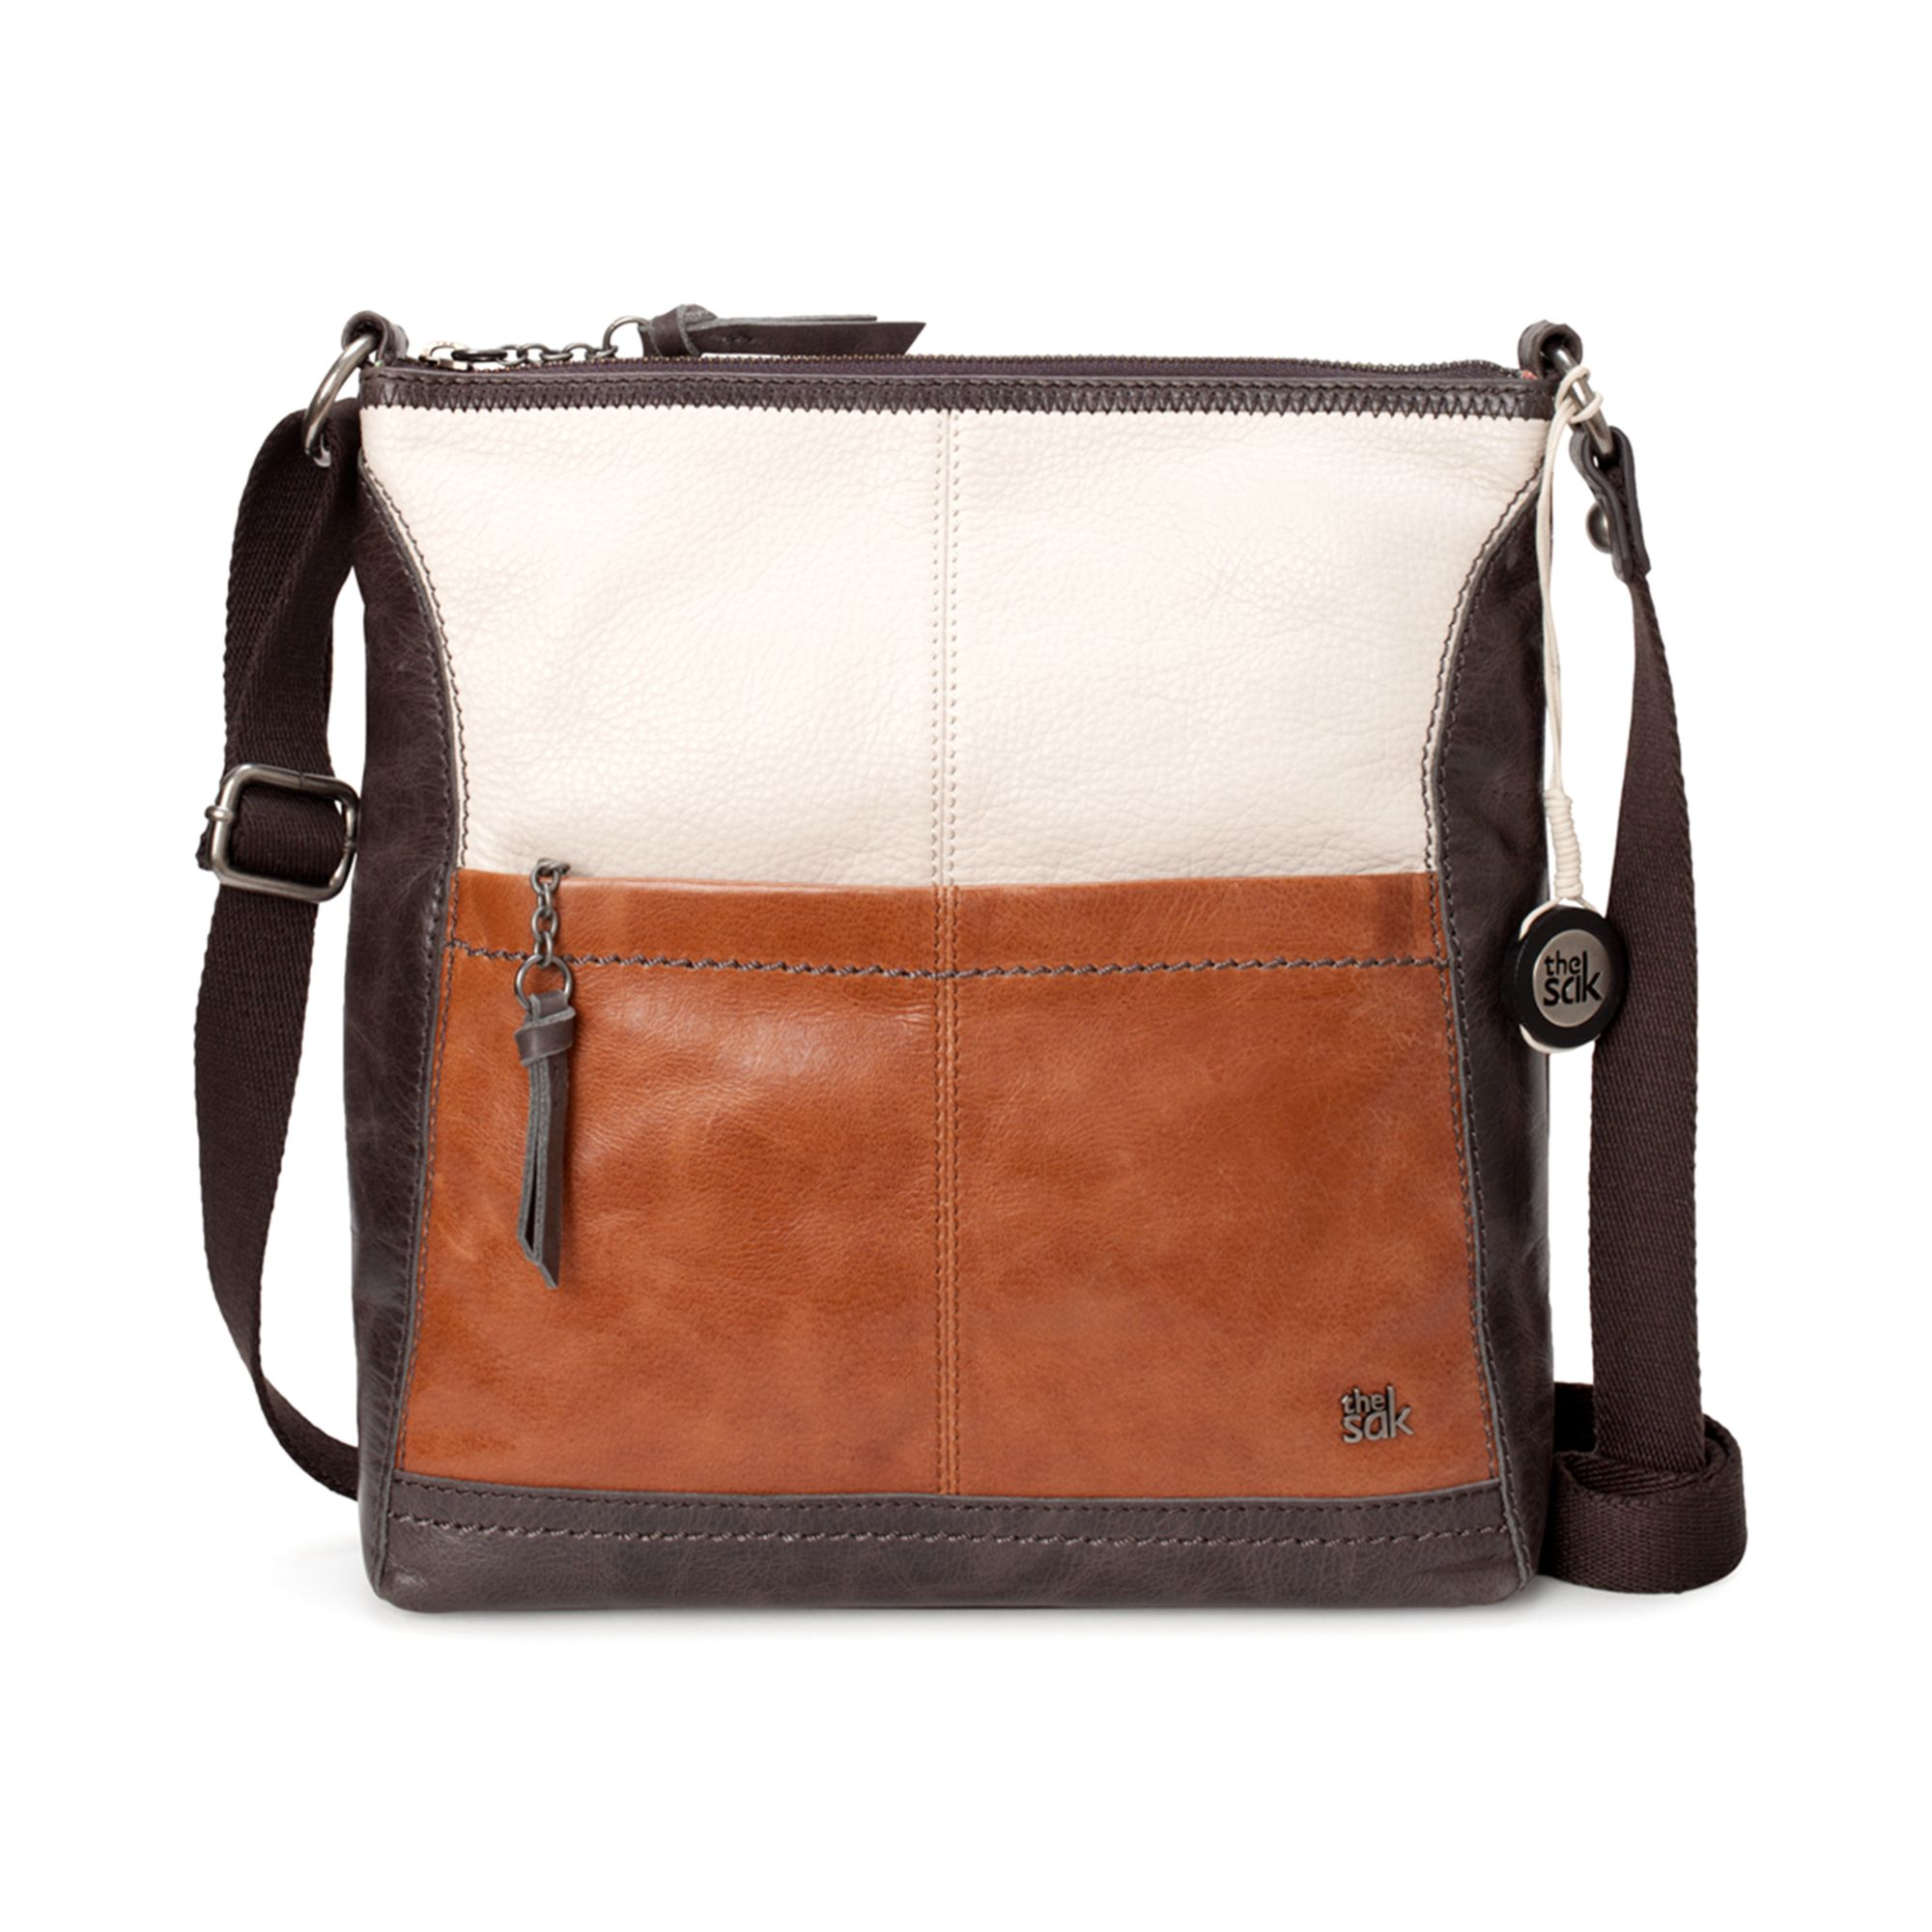 1c5fbe88ff Lyst - The Sak Iris Leather Crossbody Bag in Brown